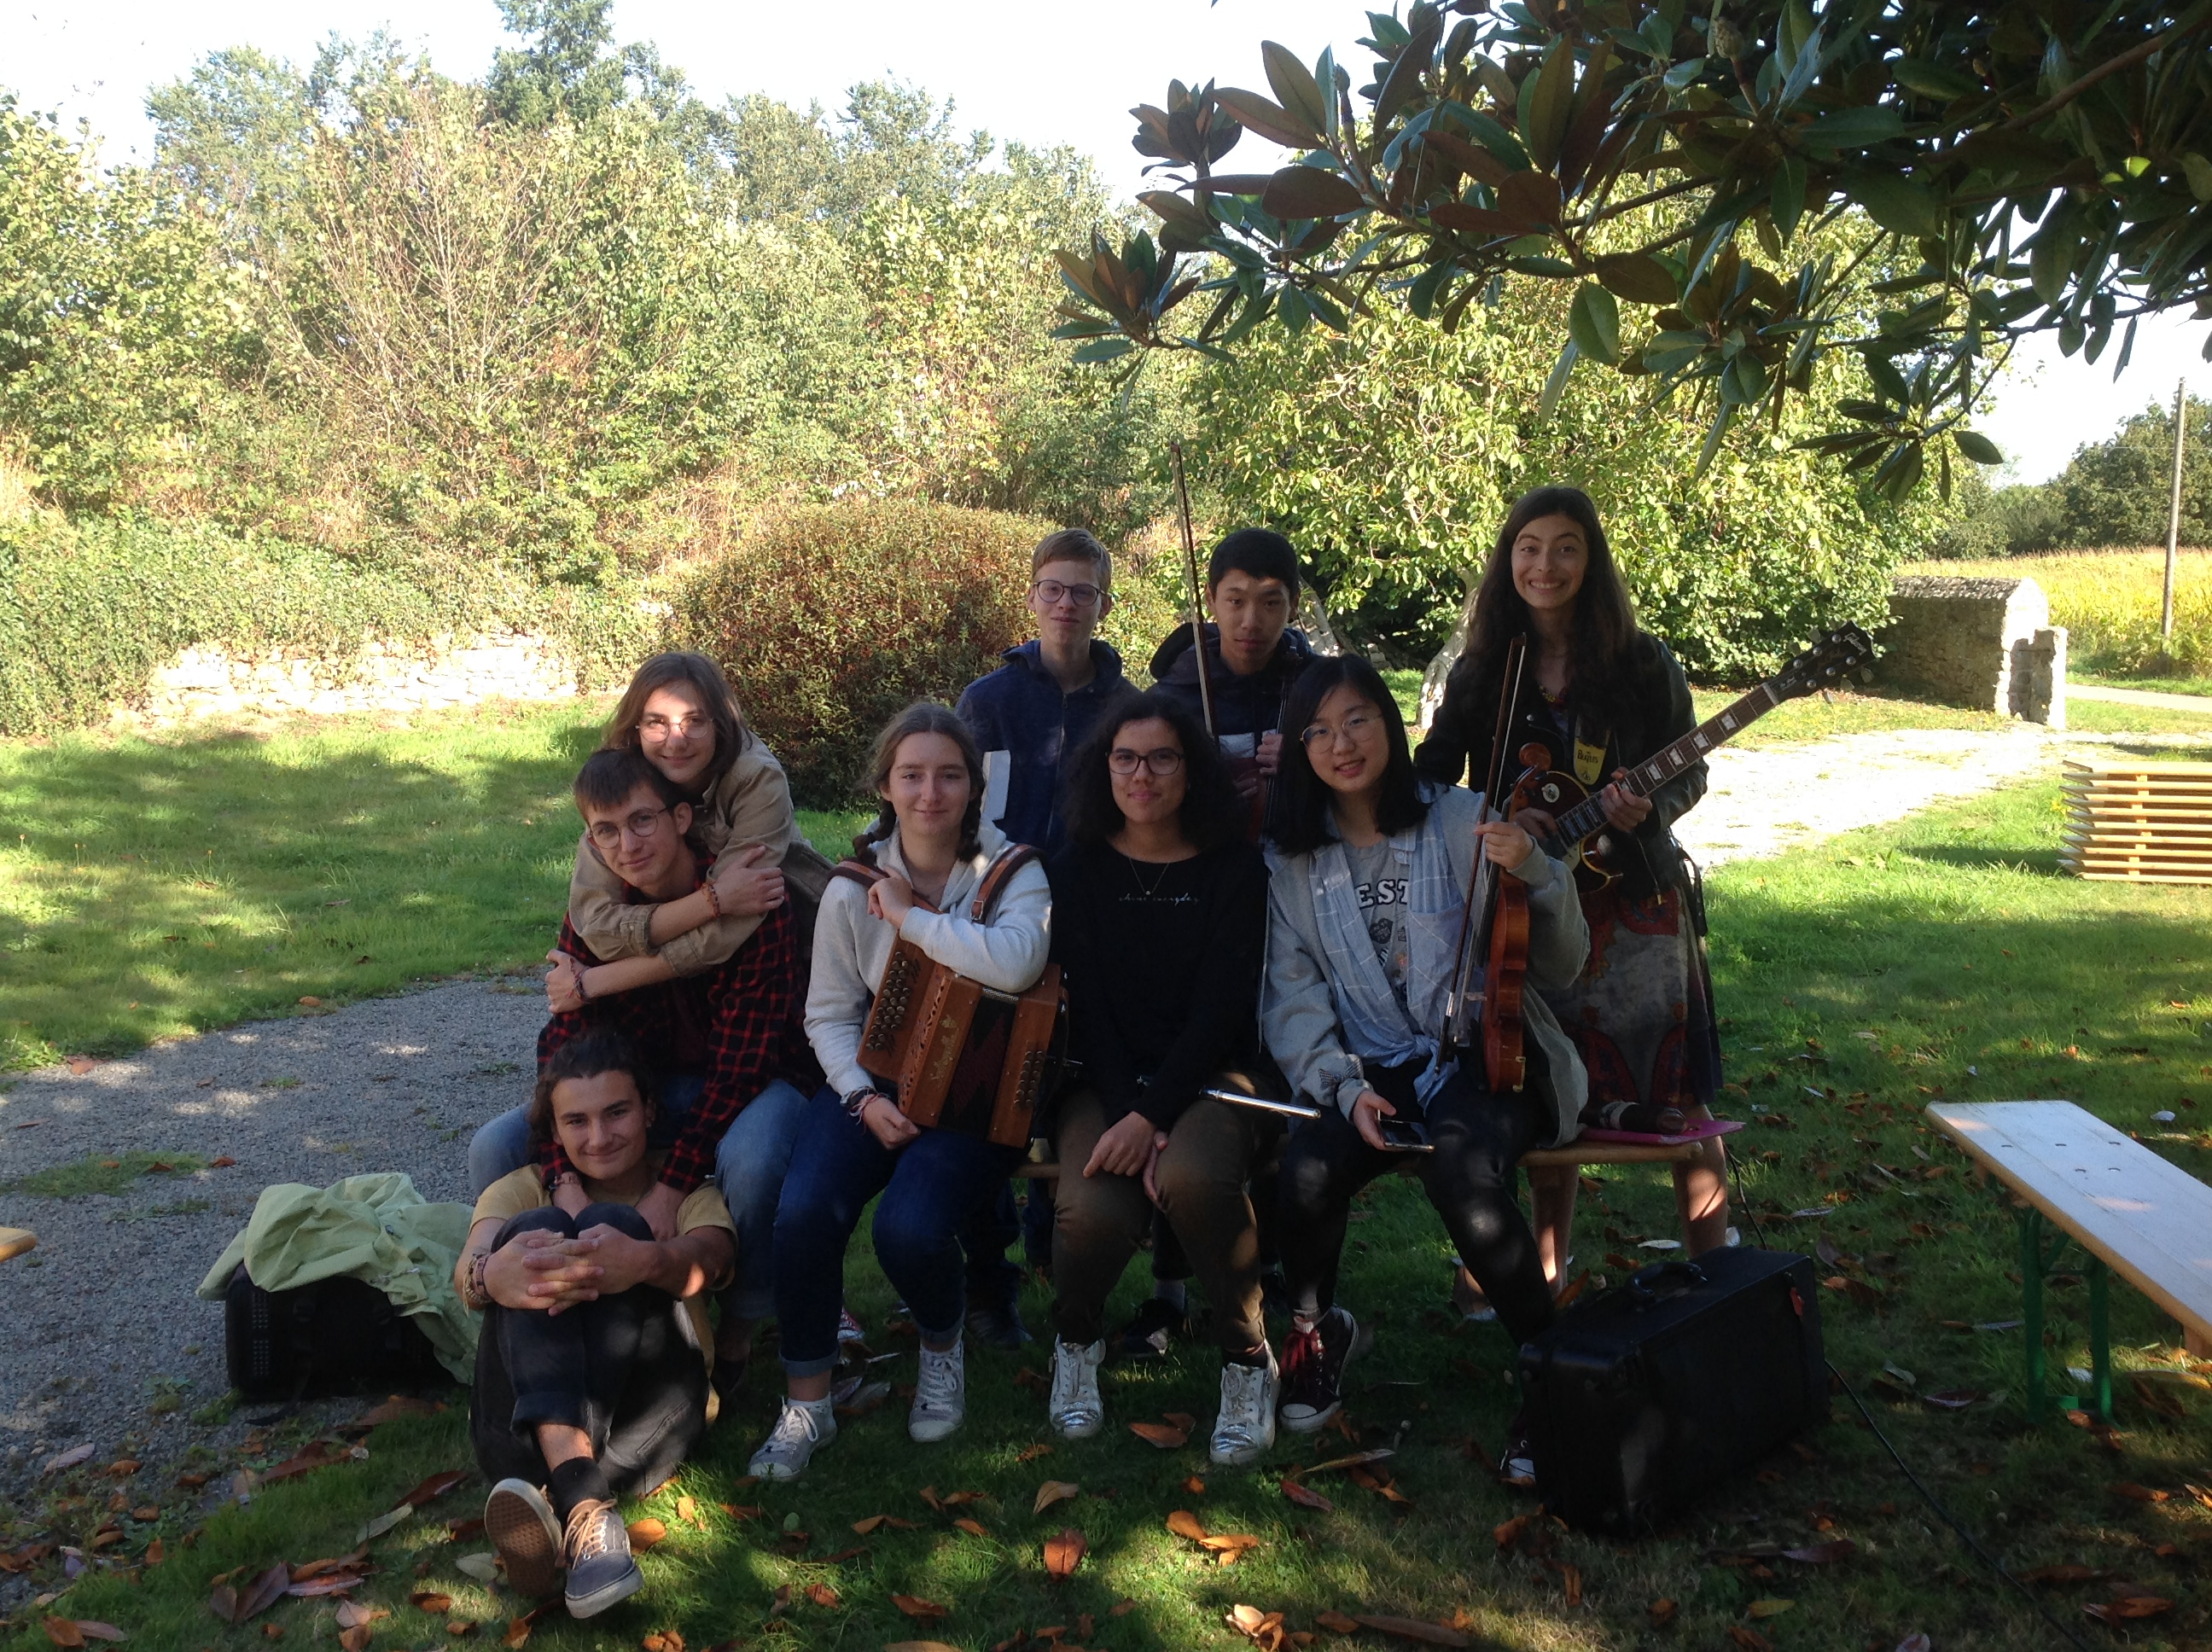 04a IMG_2777-Groupe4